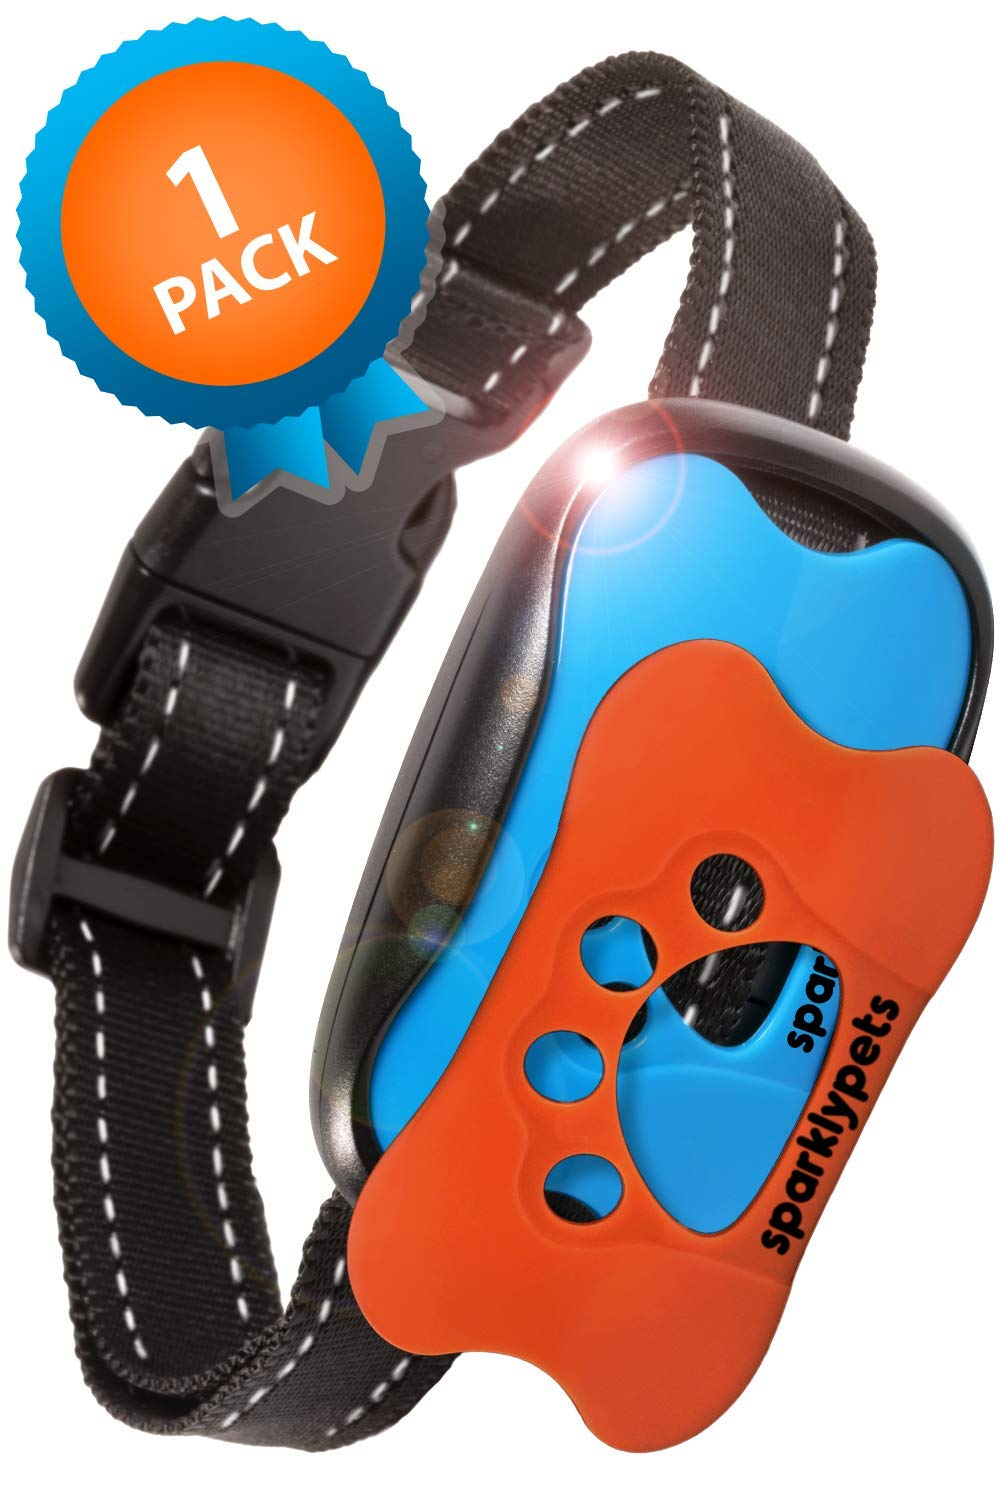 SparklyPets Humane Dog Bark Collar | Anti Barking Training Collar | Vibrating, No Shock Stop Barking for Small Medium Large Dogs | Upgraded 2019 Pet Corrector (1 Pack) by SparklyPets